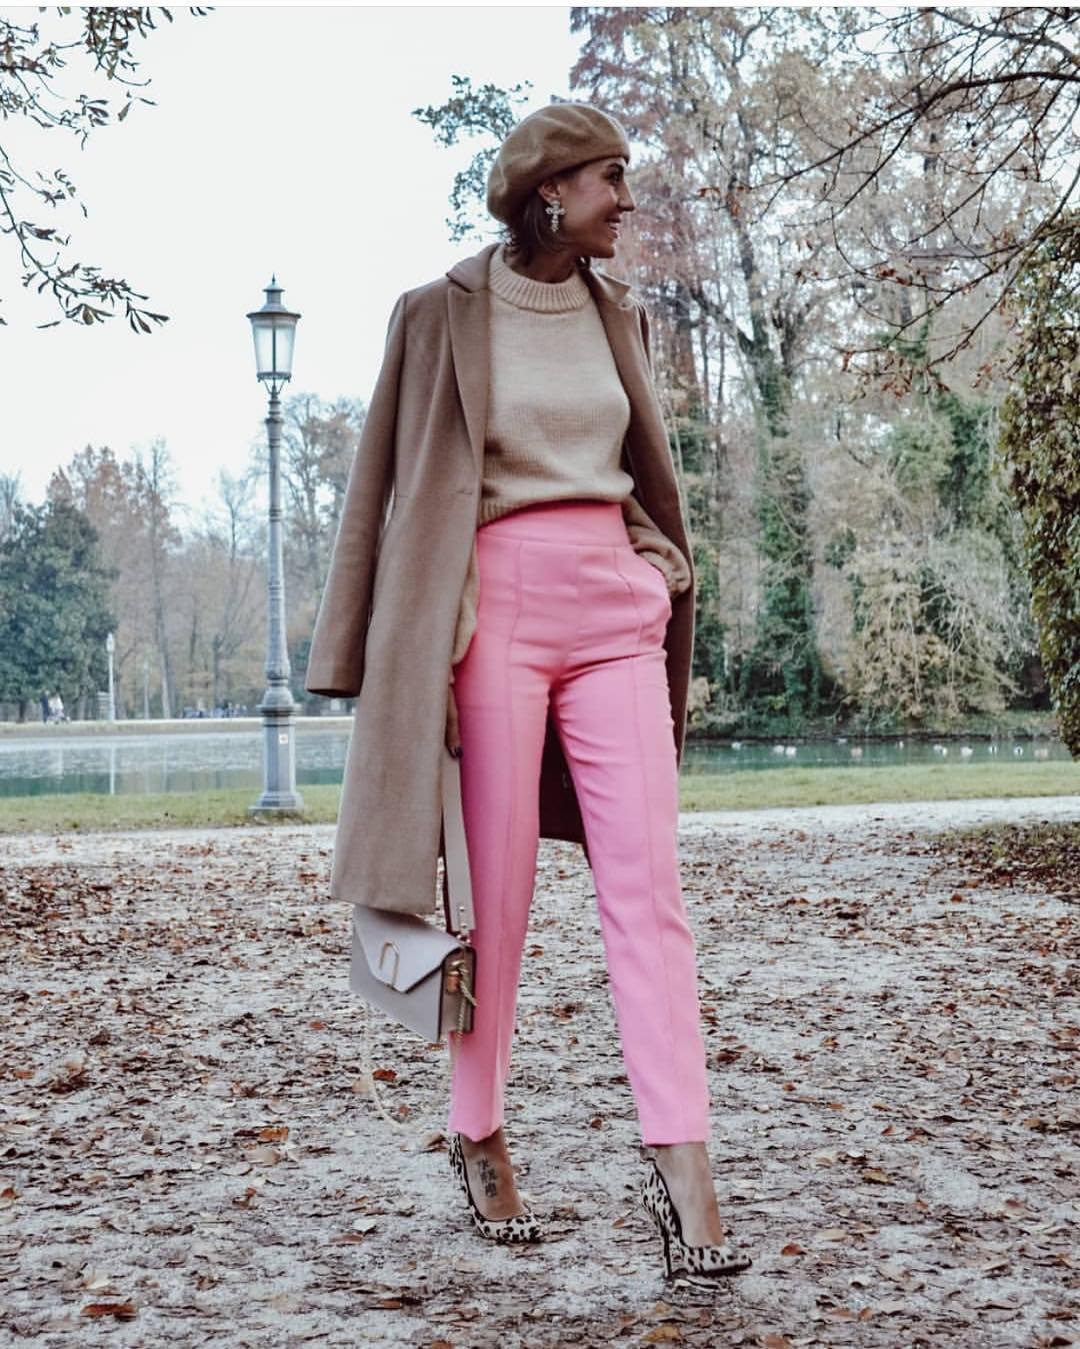 Parisian Street Style For Fall: Beret Hat, Coat And Tailored Pants 2021